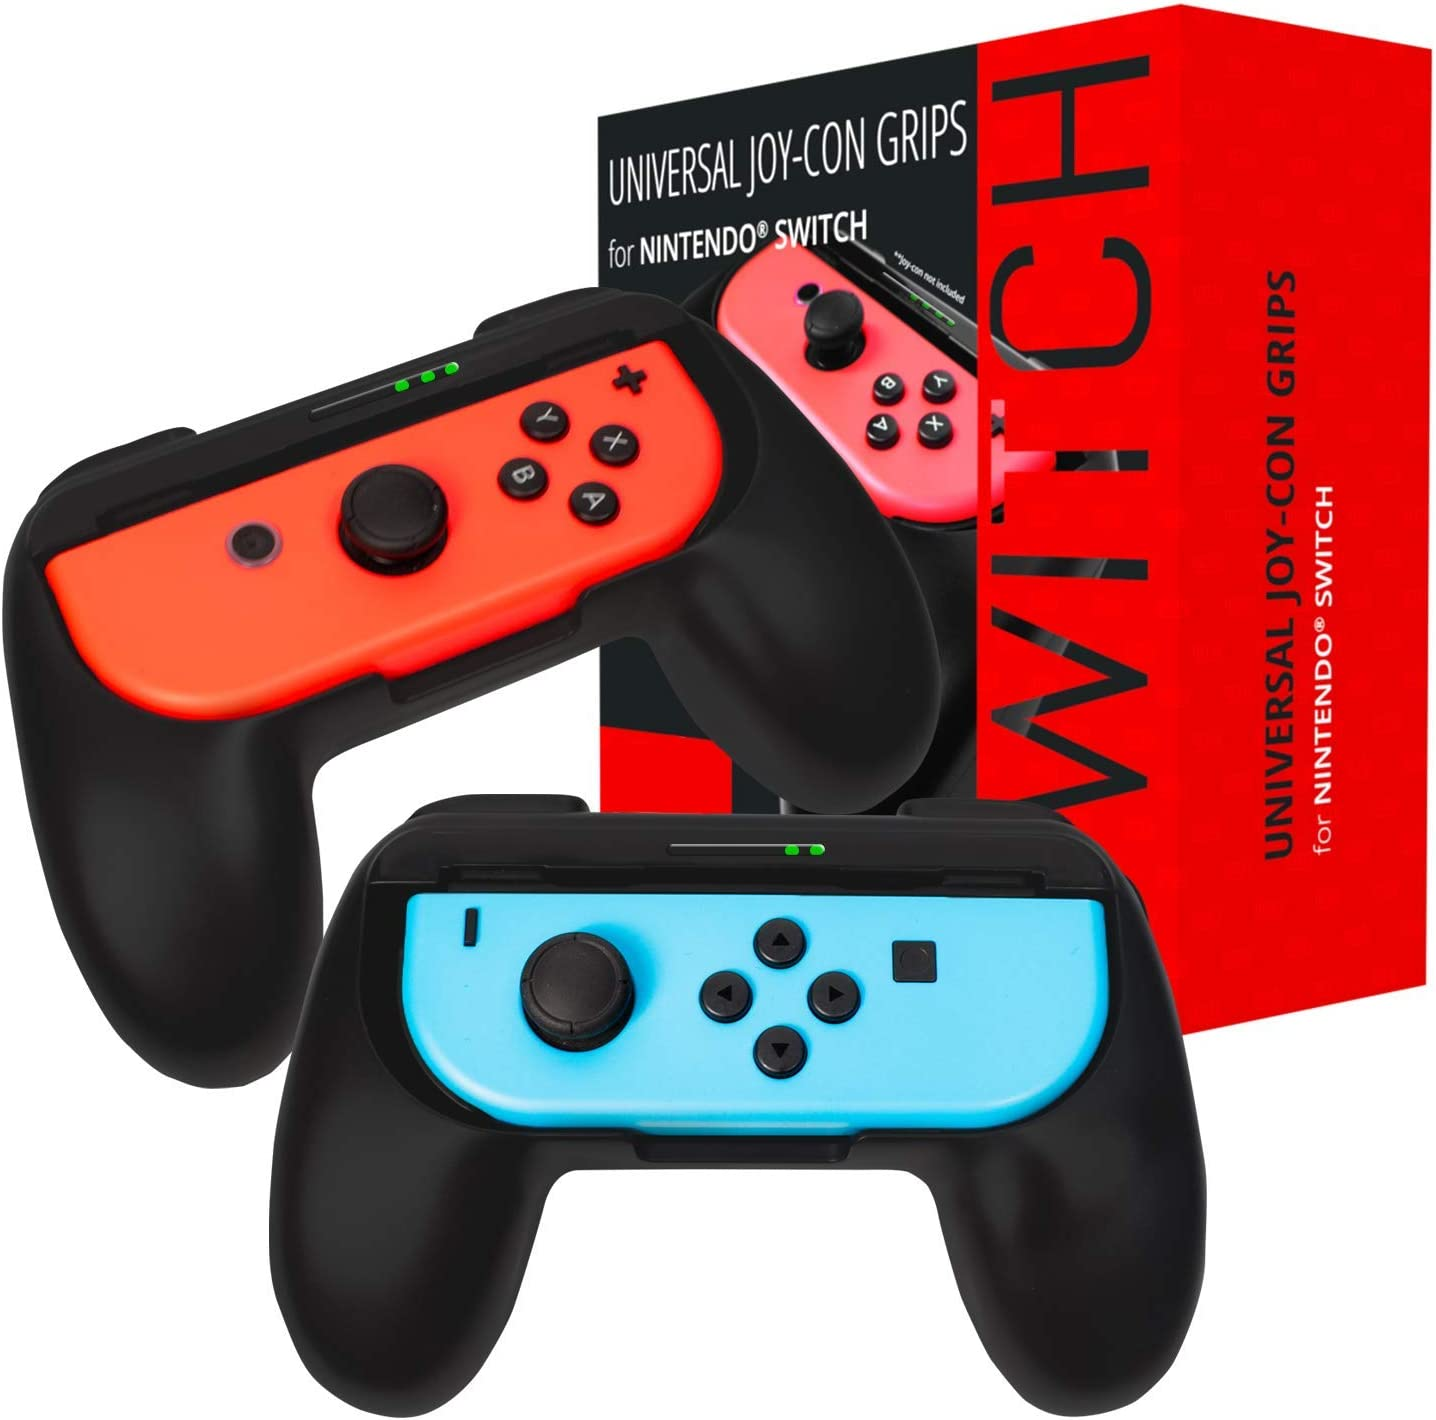 Grips de Orzly compatibles con los Joy-Cons de la Nintendo Switch: Amazon.es: Electrónica